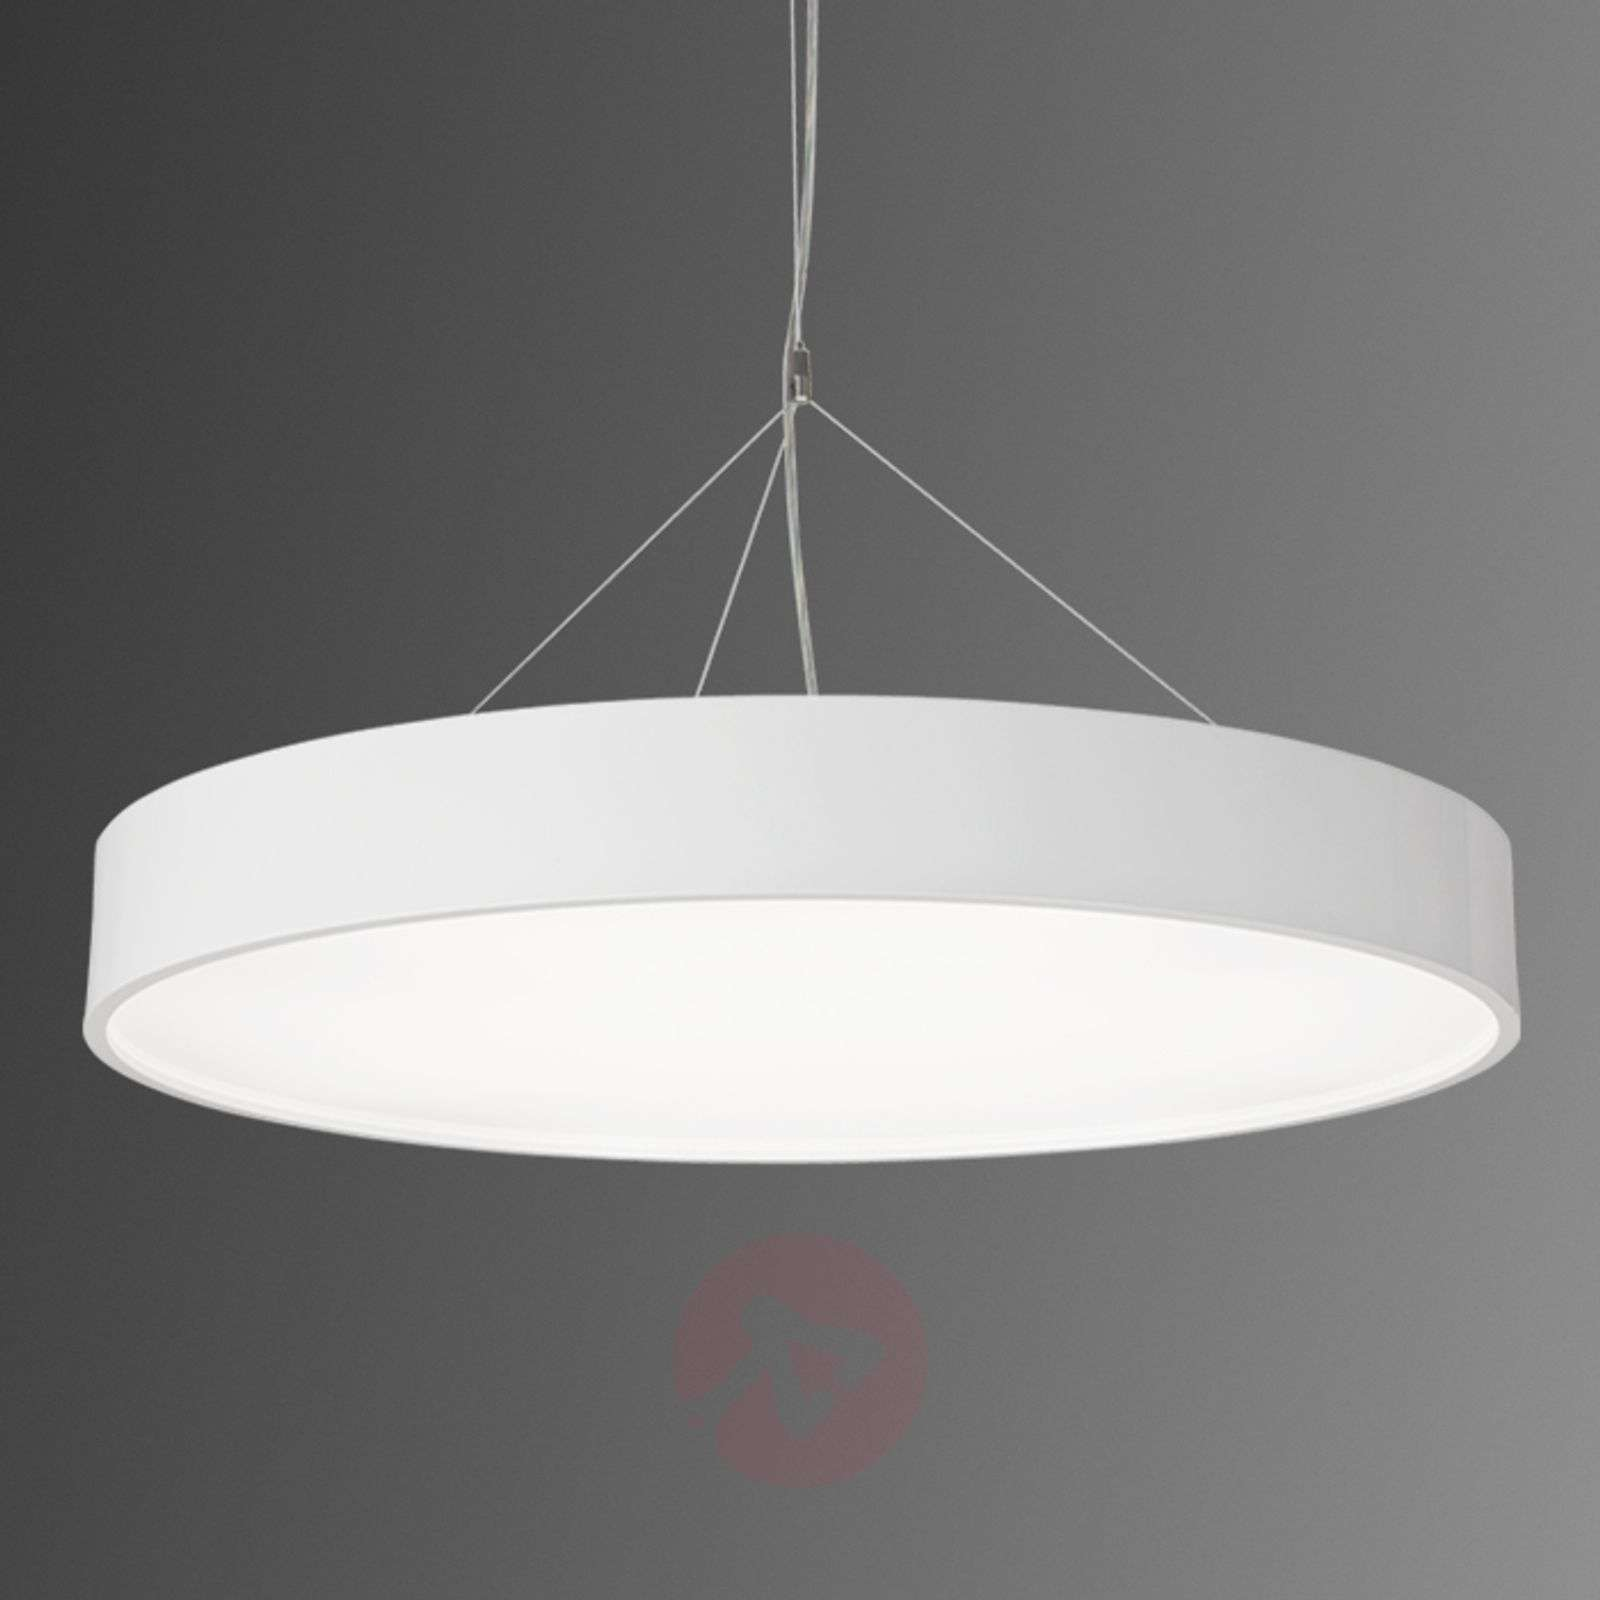 Hanging Can Lights: Large LED Hanging Light Module P945 Round White